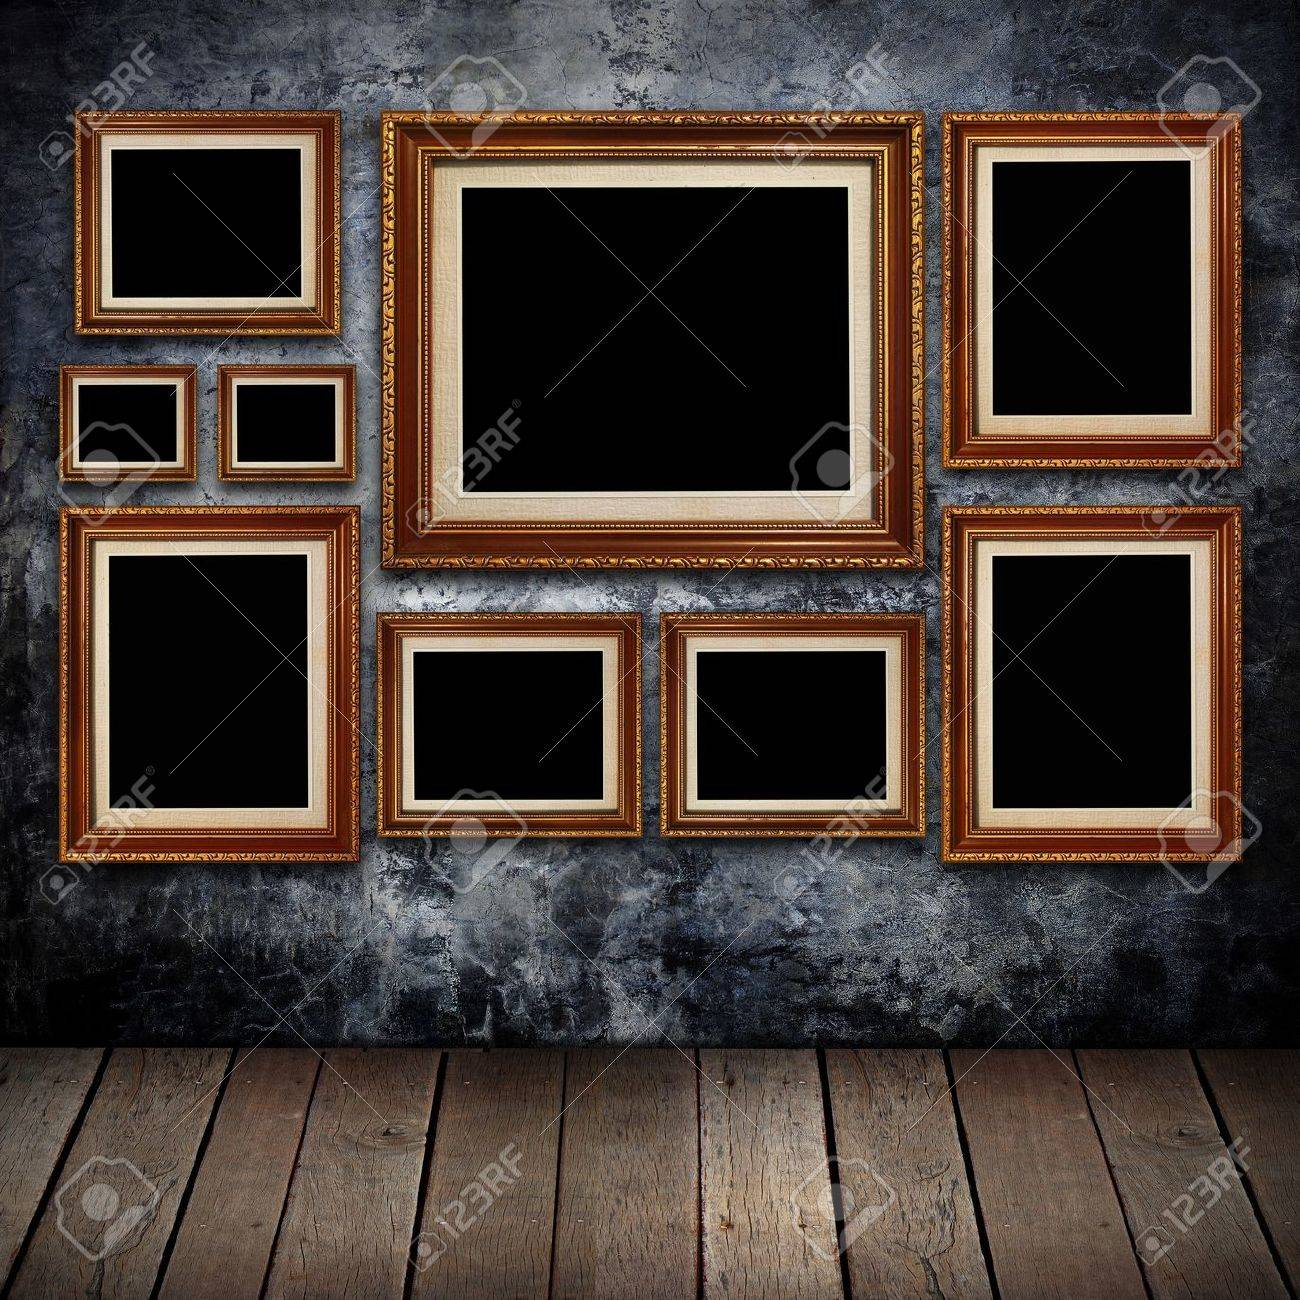 grungy wall with gold frames and old wood background stock photo 12455480